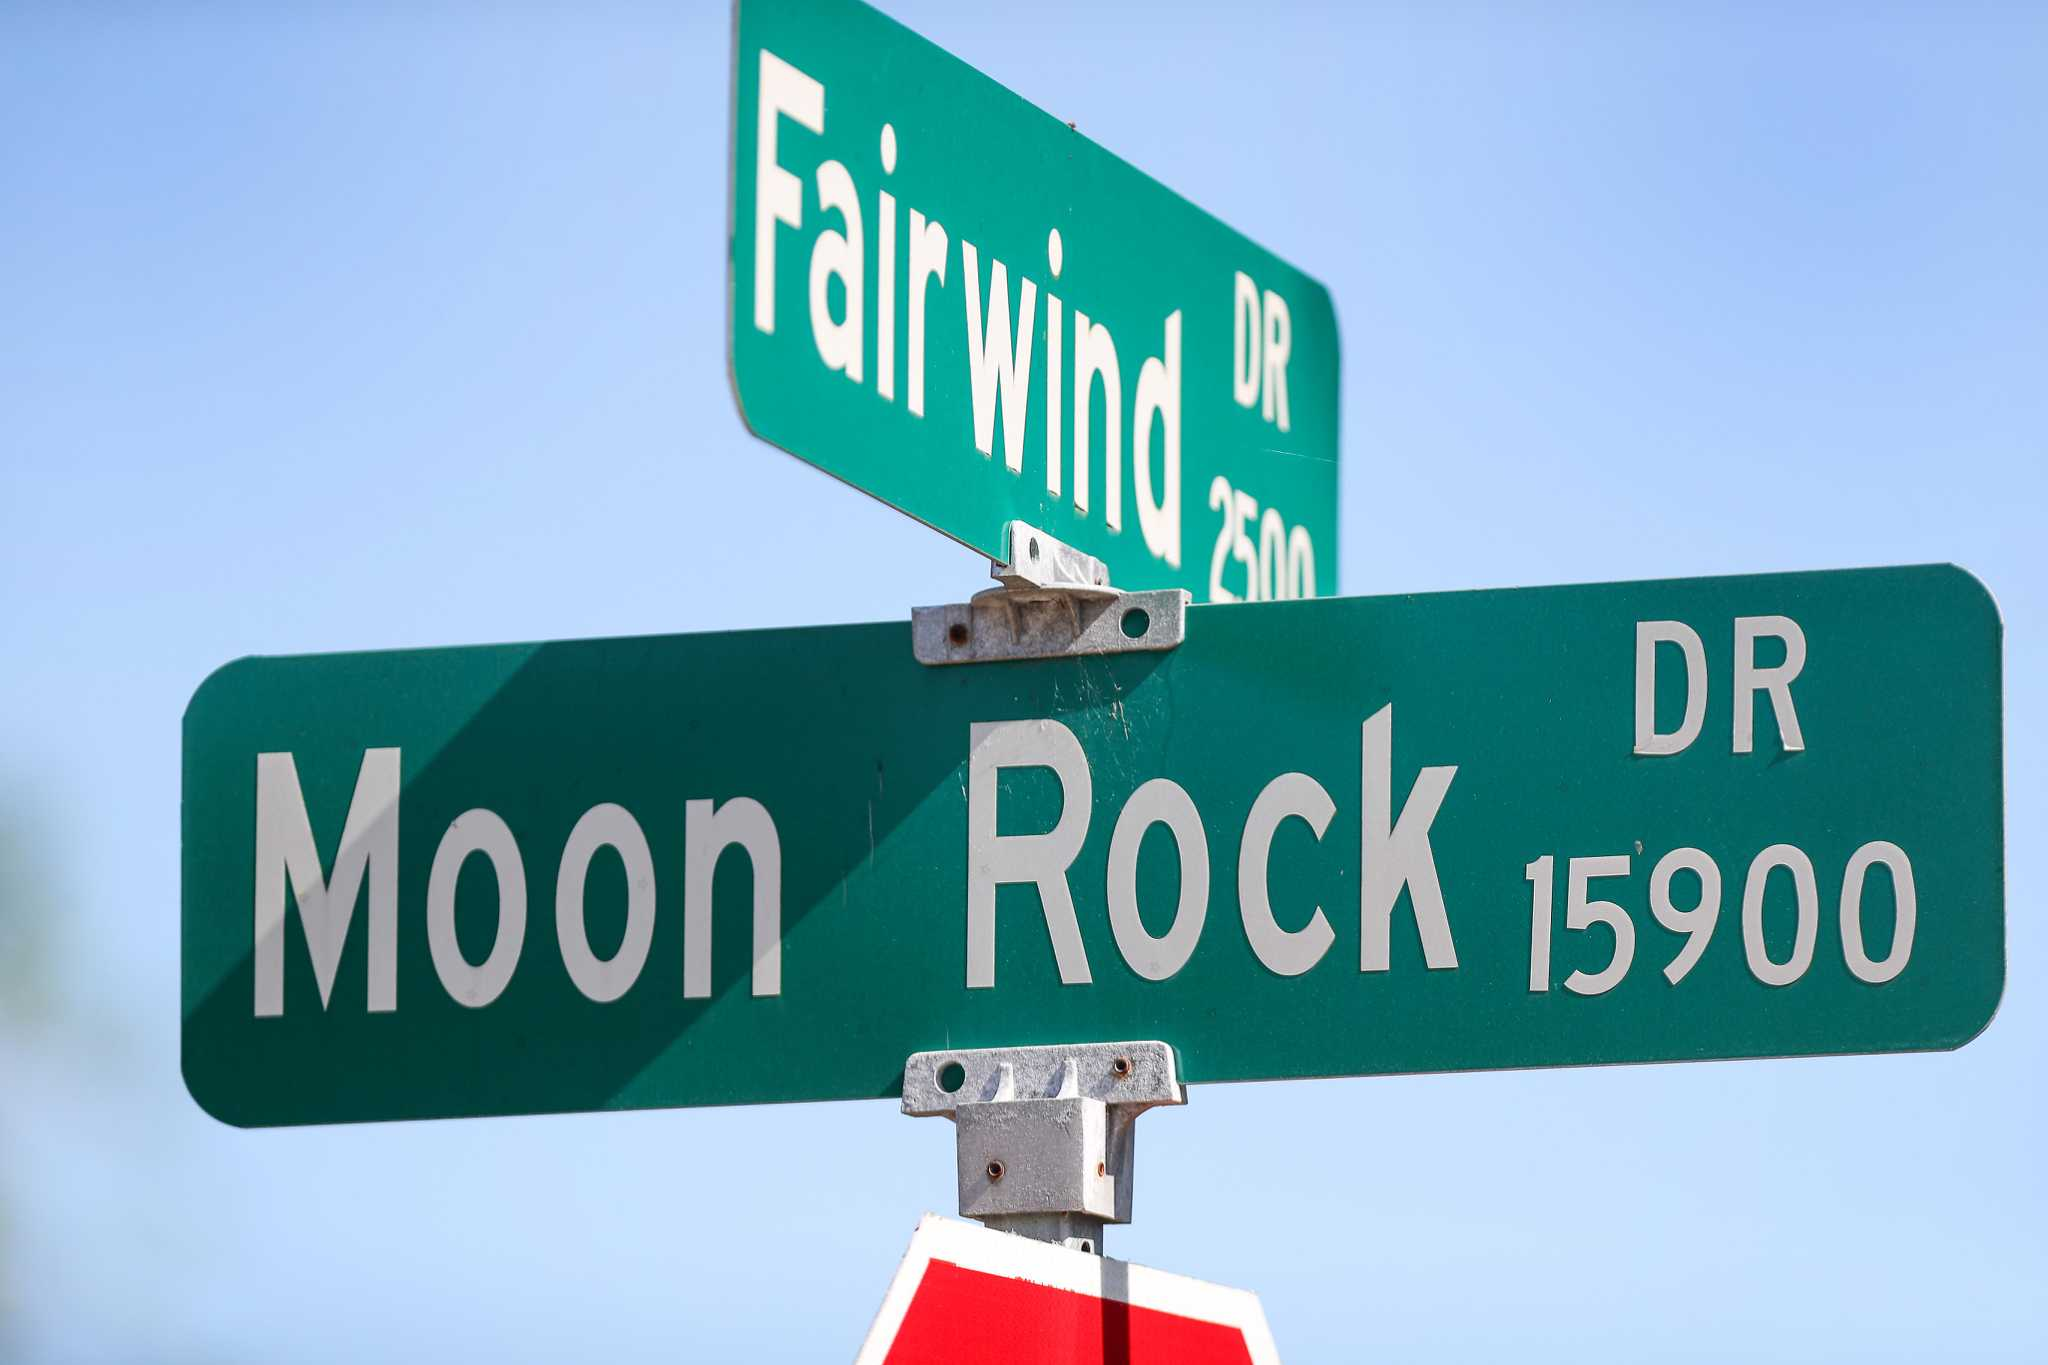 What's in a name in Houston? Lots of moon references for Space City USA